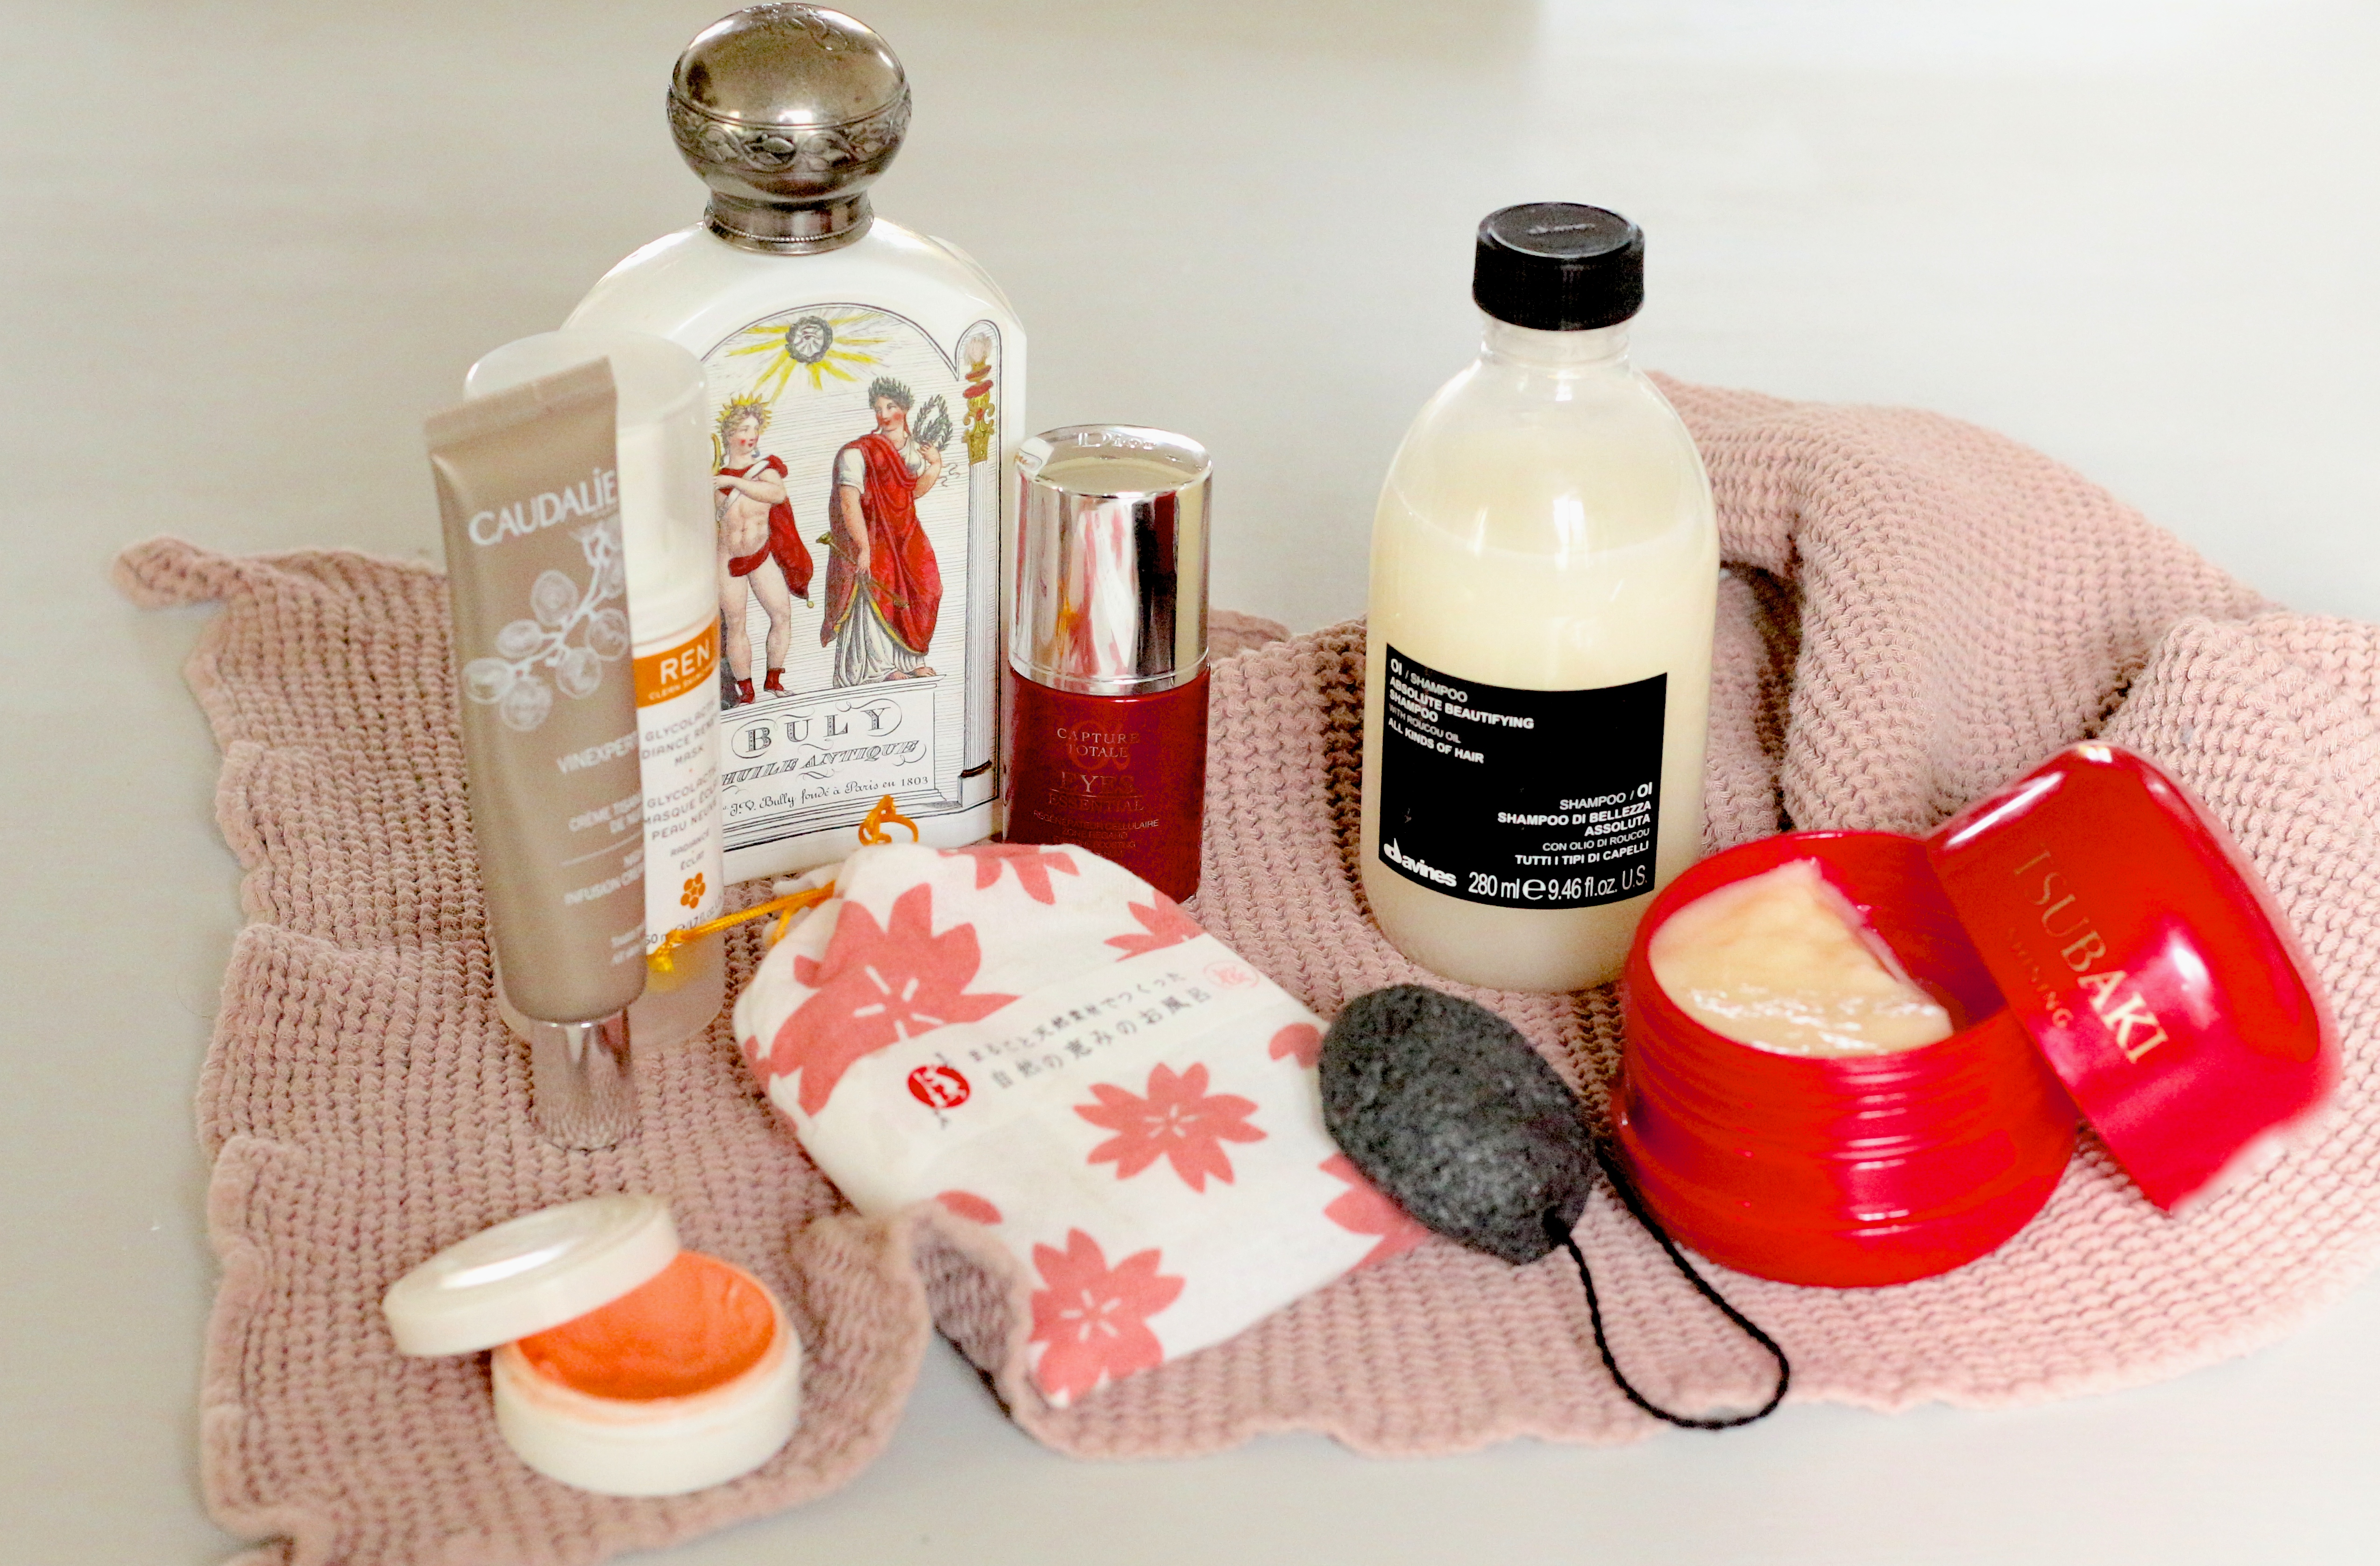 beauté cocooning  : Buly, Davines, Dior, Caudalie -  Sweet Cabane